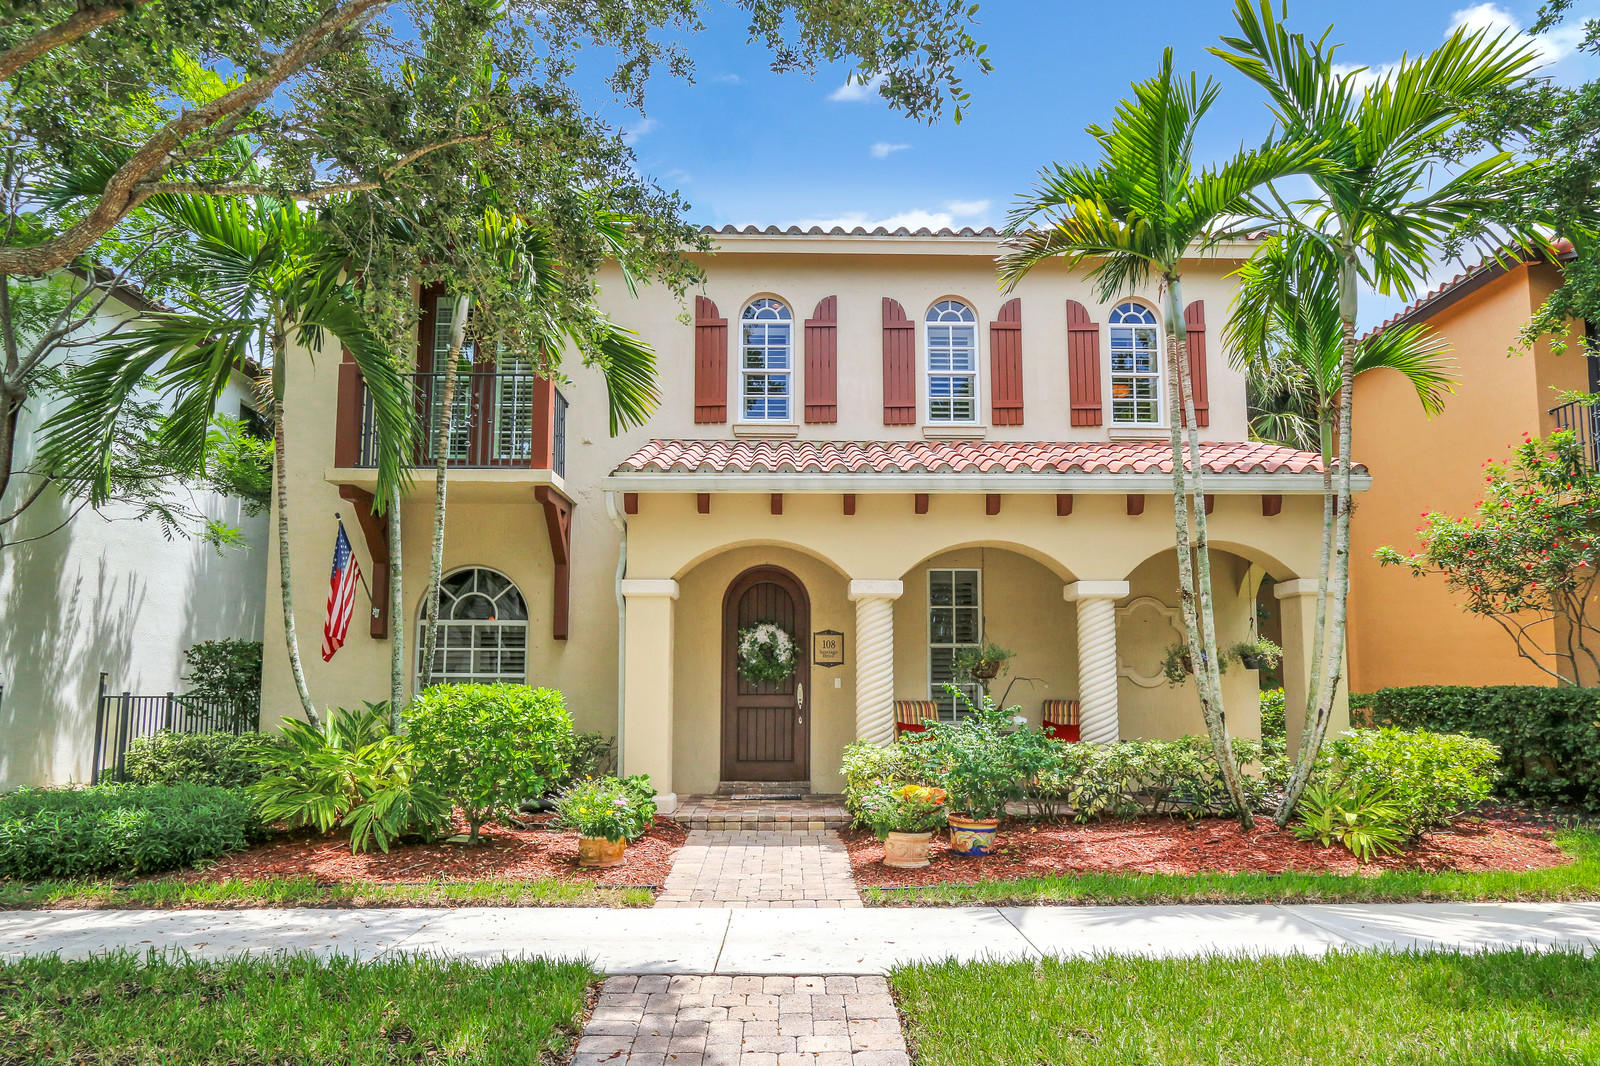 New Home for sale at 108 Santiago Drive in Jupiter